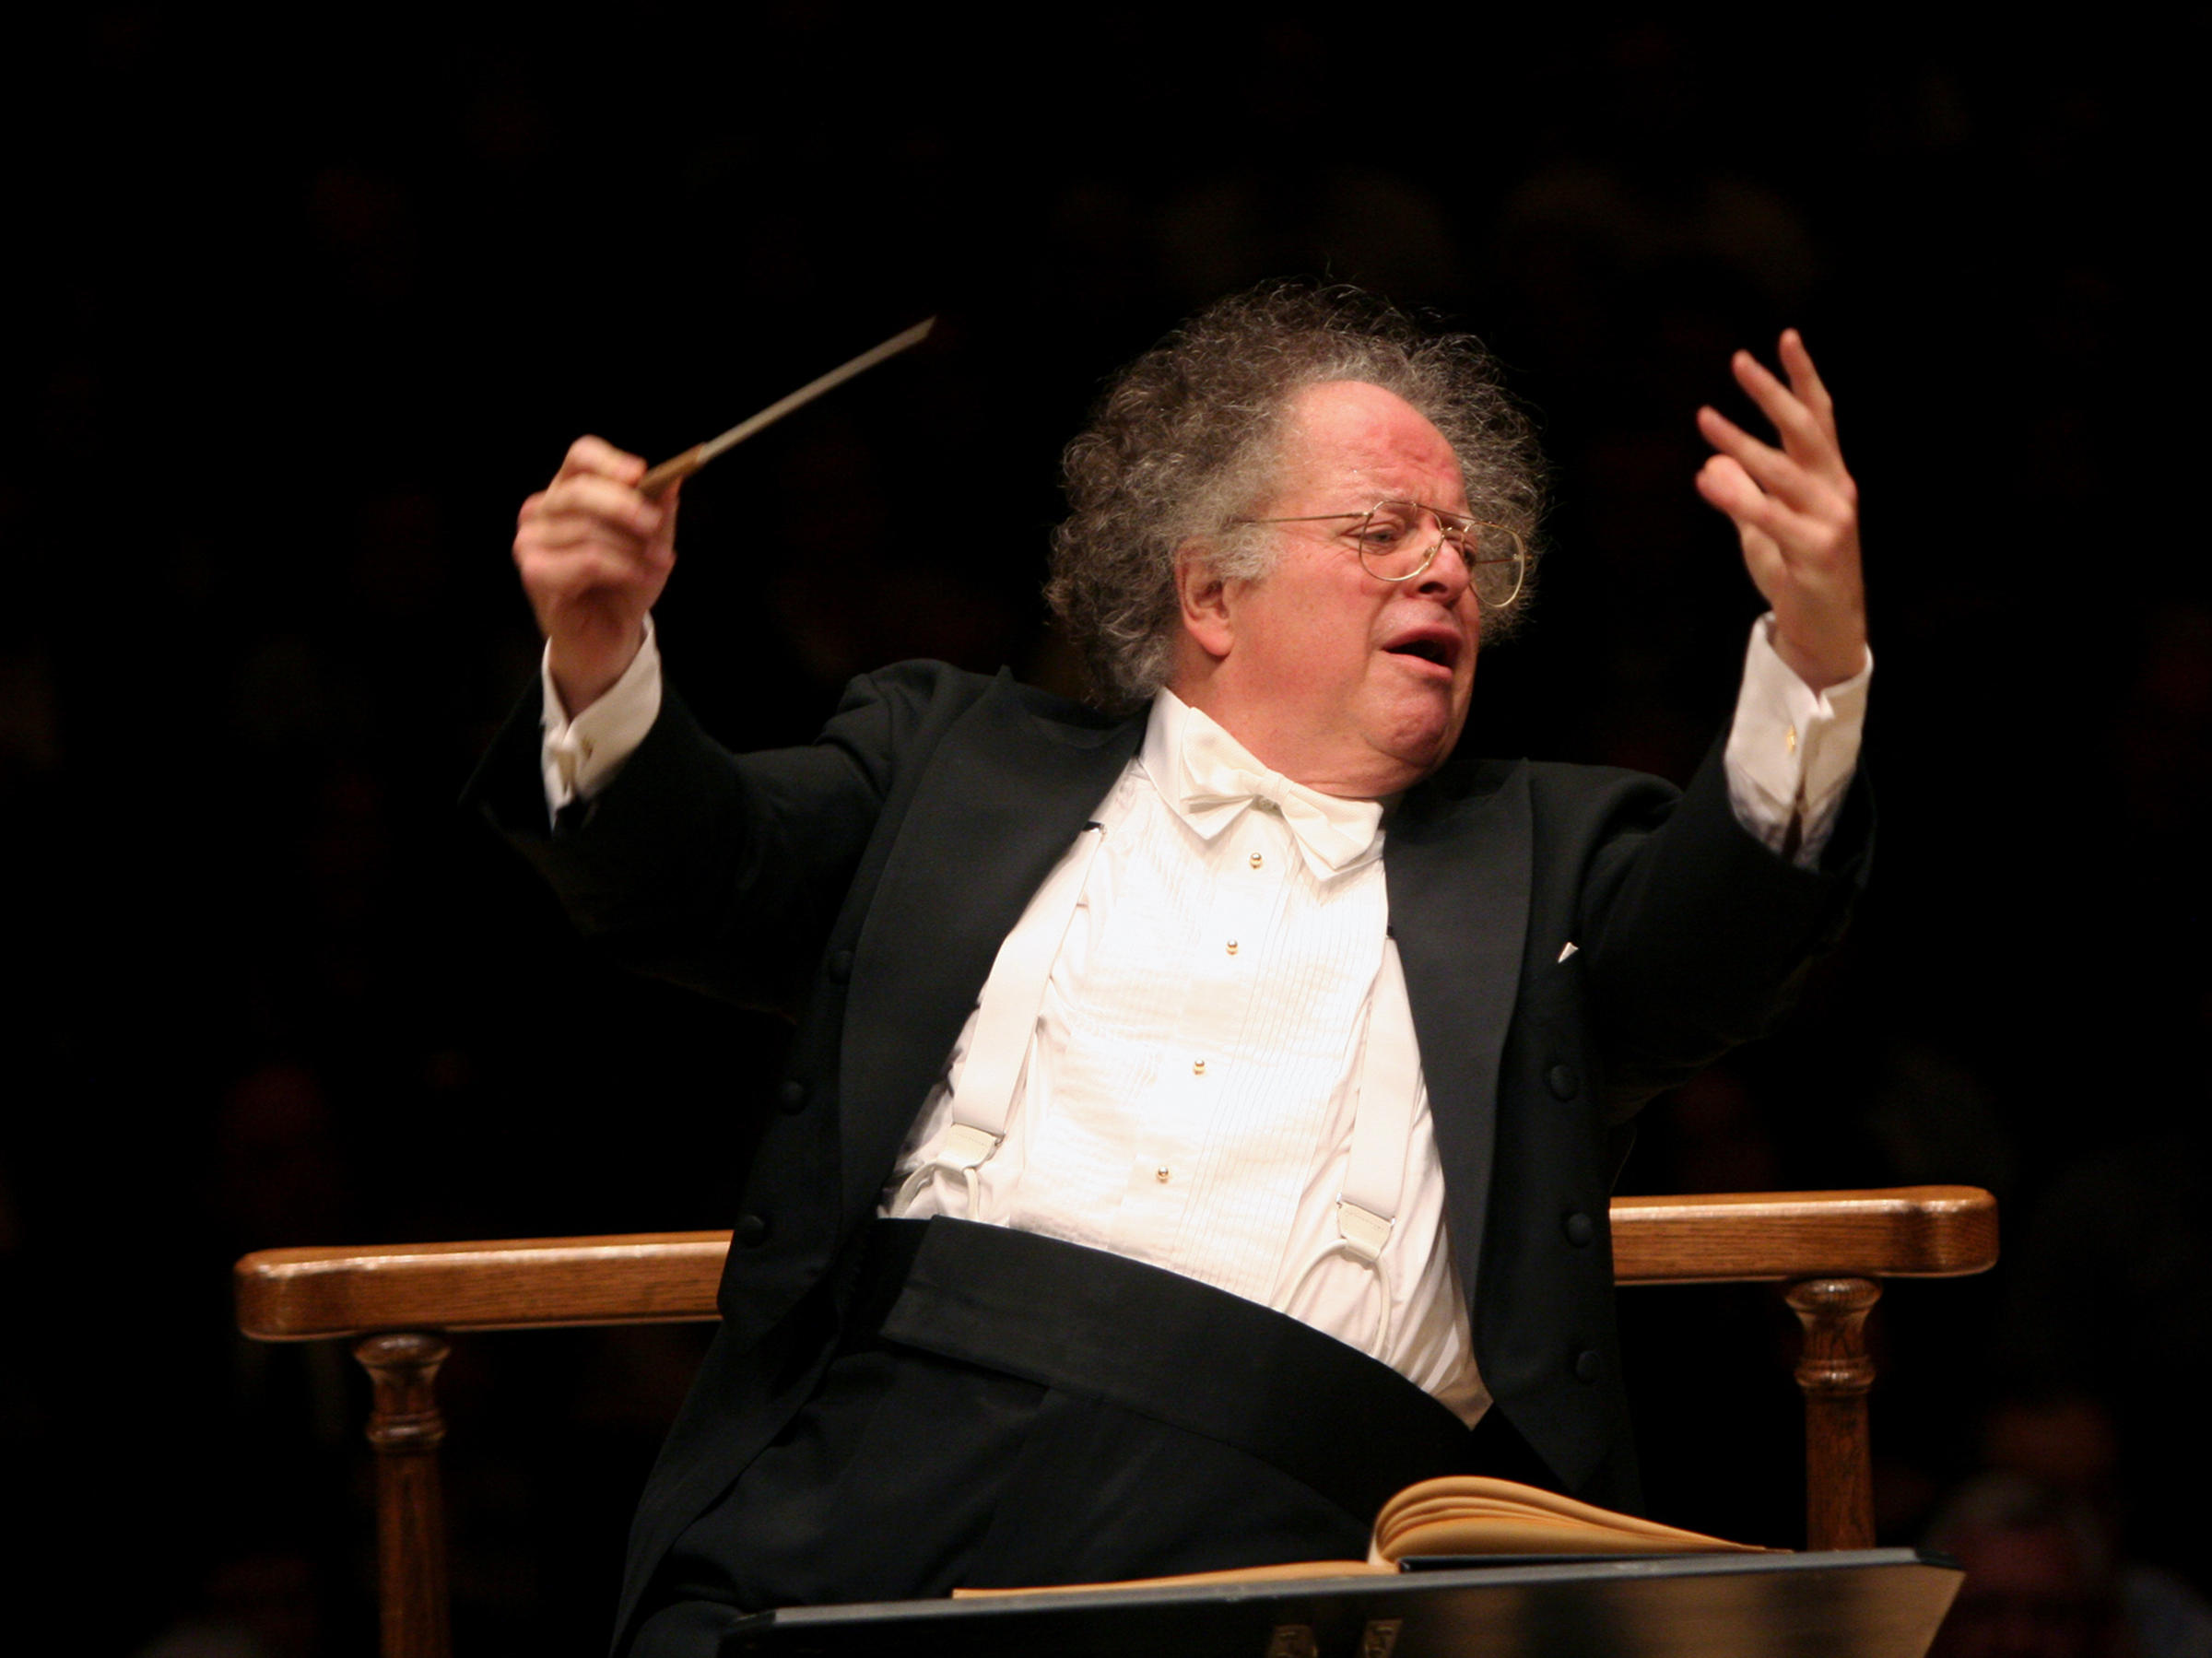 Met Opera, James Levine Avoid Public Dispute In #MeToo Accusations